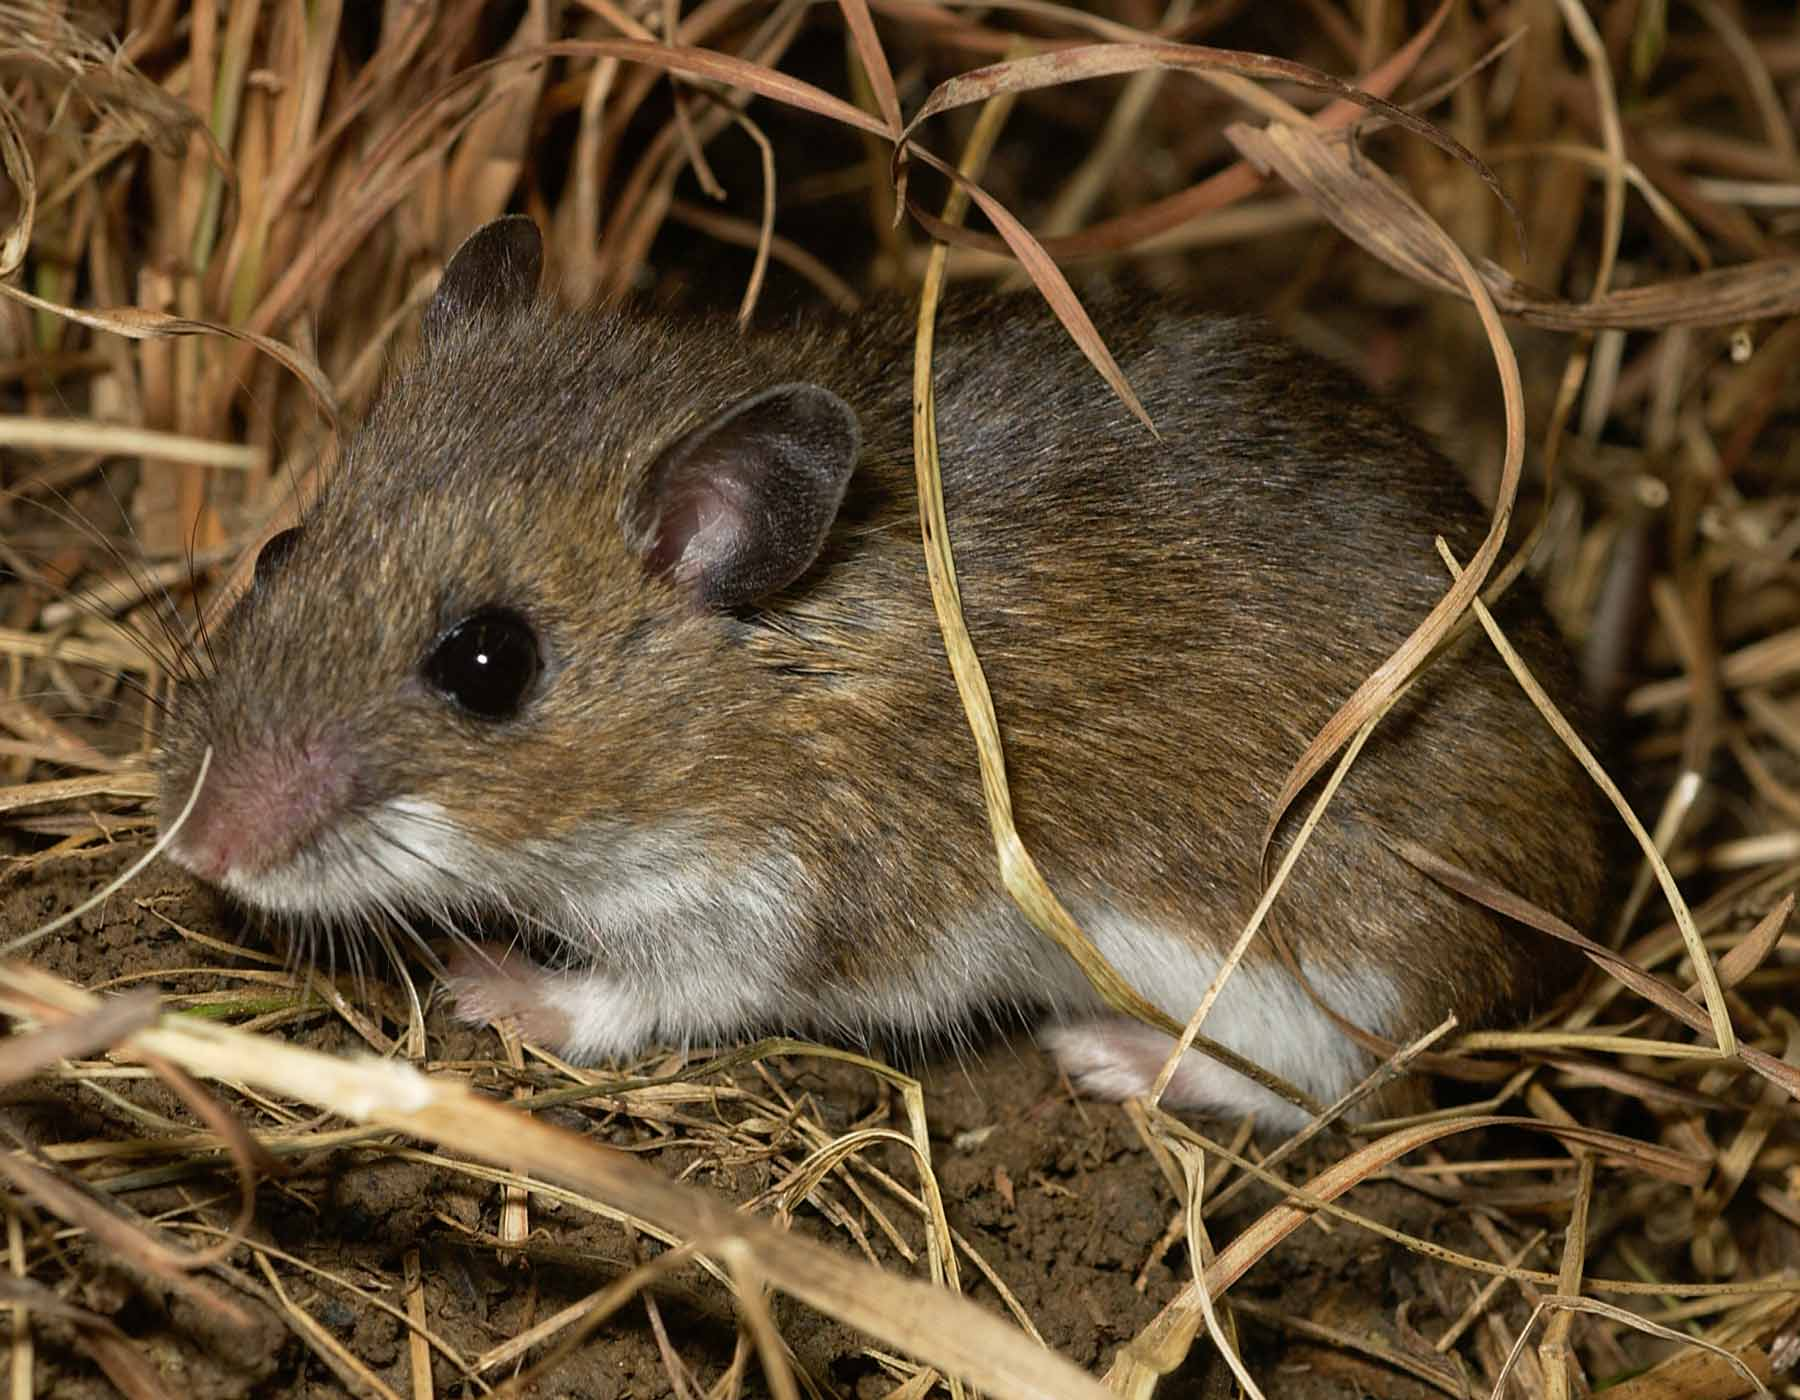 Rats and Mice – Wildlife Illinois